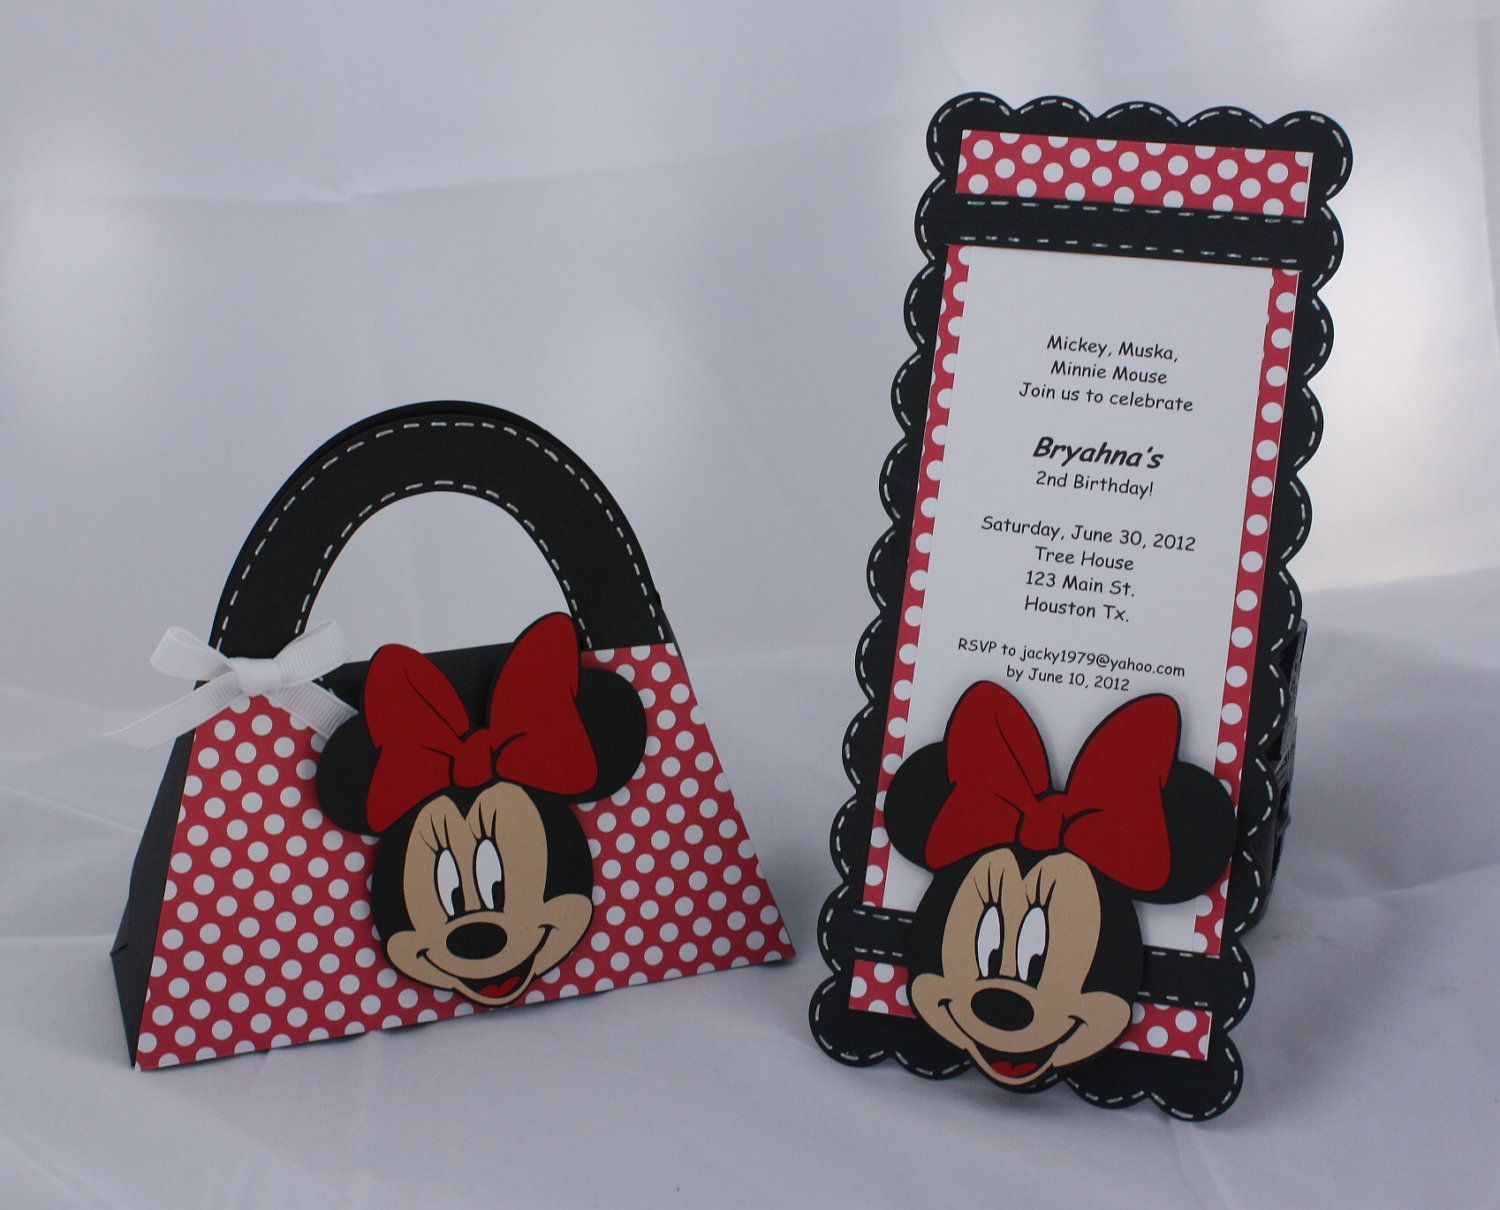 Minnie Mouse Birthday Invitations and Goody Bag Set 4000 via – Minnie Invitations for Birthdays